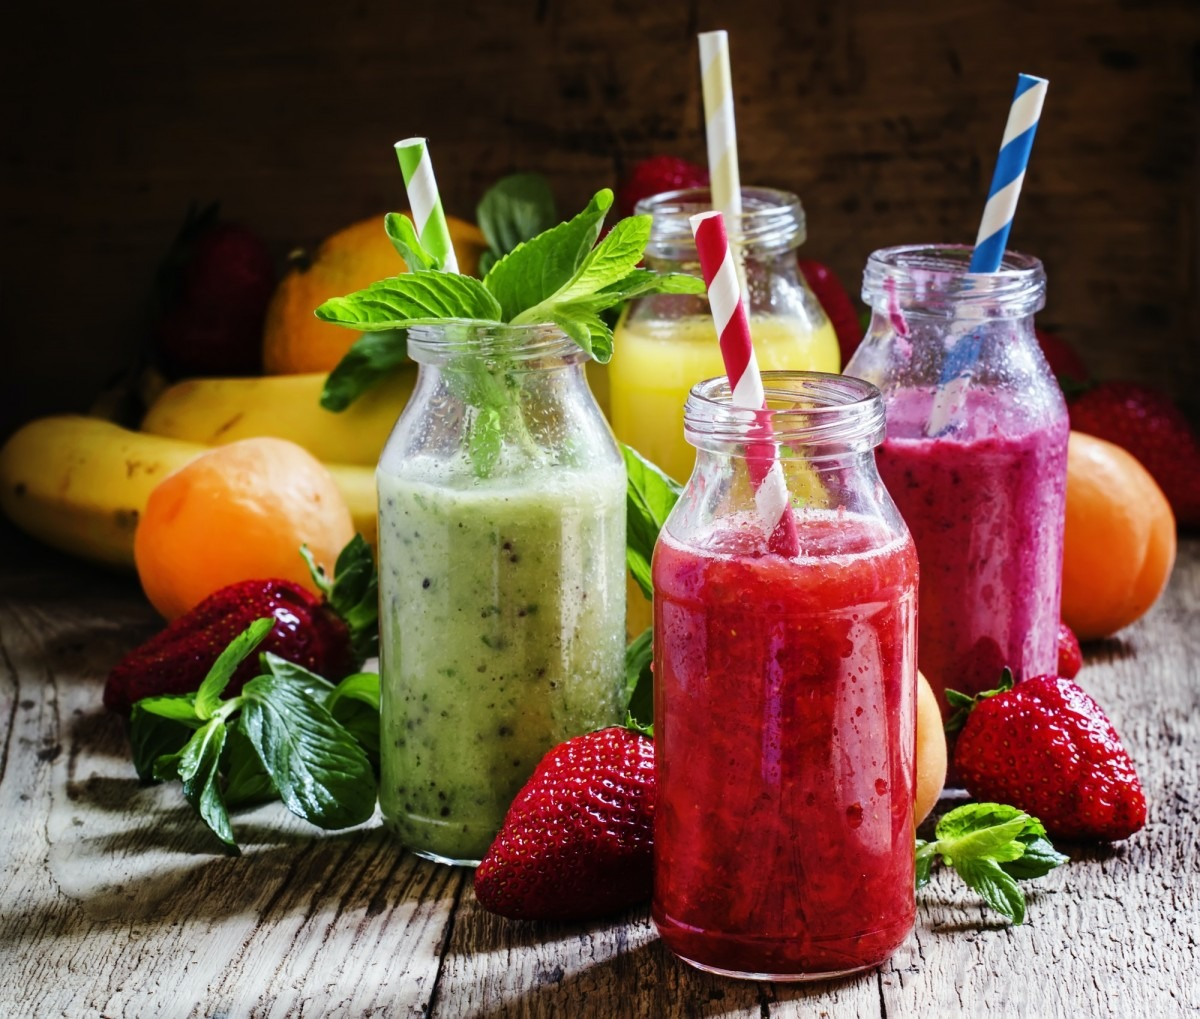 Fruit smoothies with colored straws in glass bottles